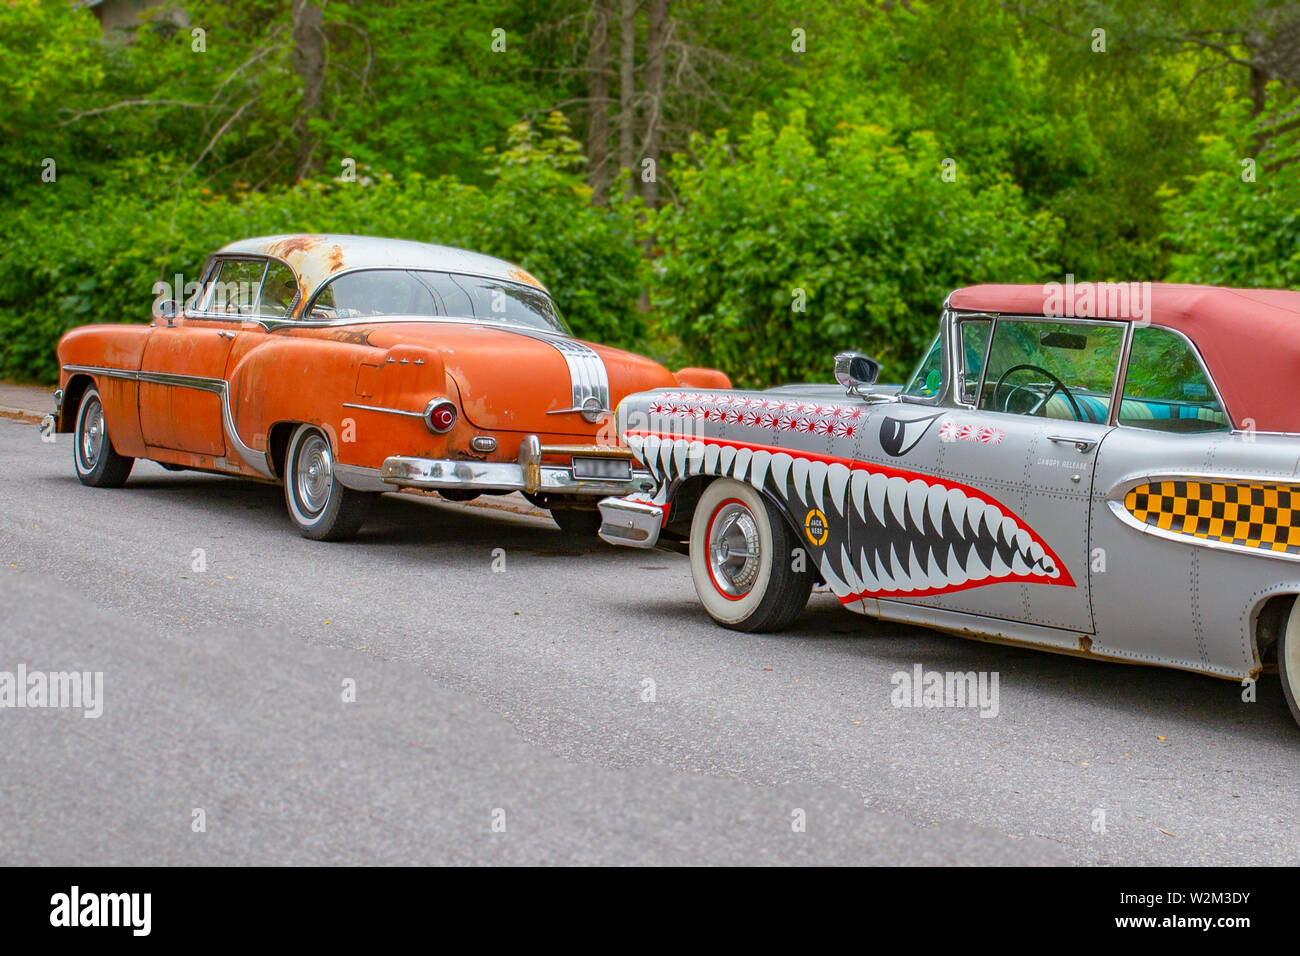 Turku, Finland - 02 July, 2018: Circa 1954 Pontiac Chieftan and circa 1958 Edsel Pacer convertible painted like a WWII era fighter plane. Stock Photo